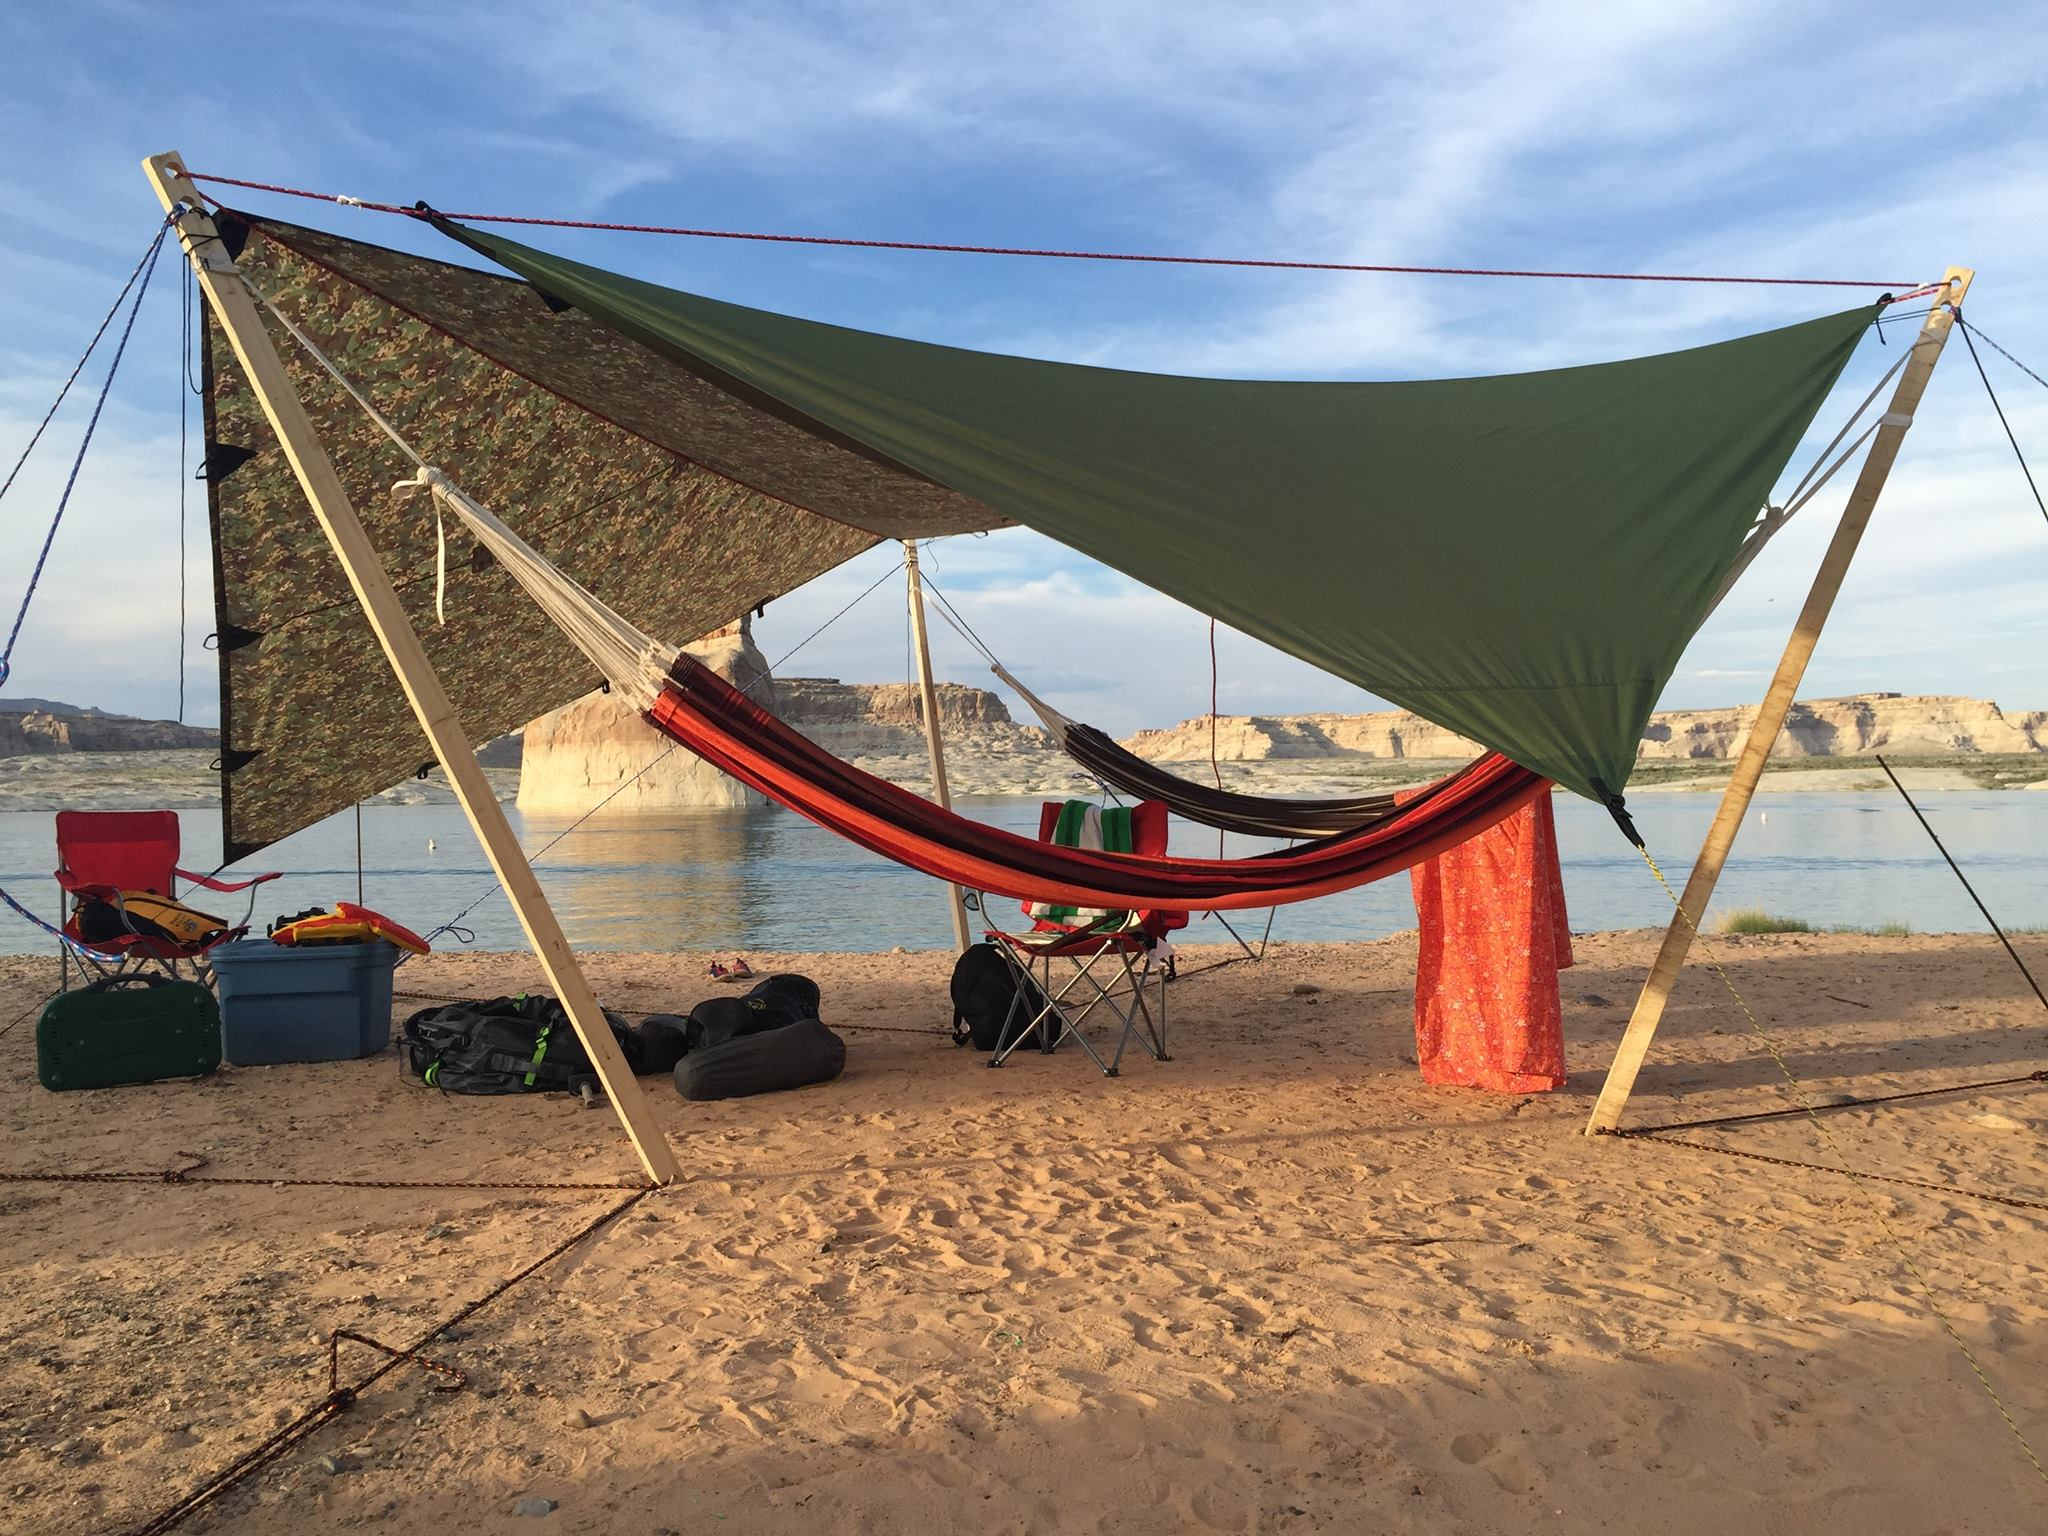 The Byer of Maine Paradiso Double Hammock on the shores of Lake Powell, Arizona.